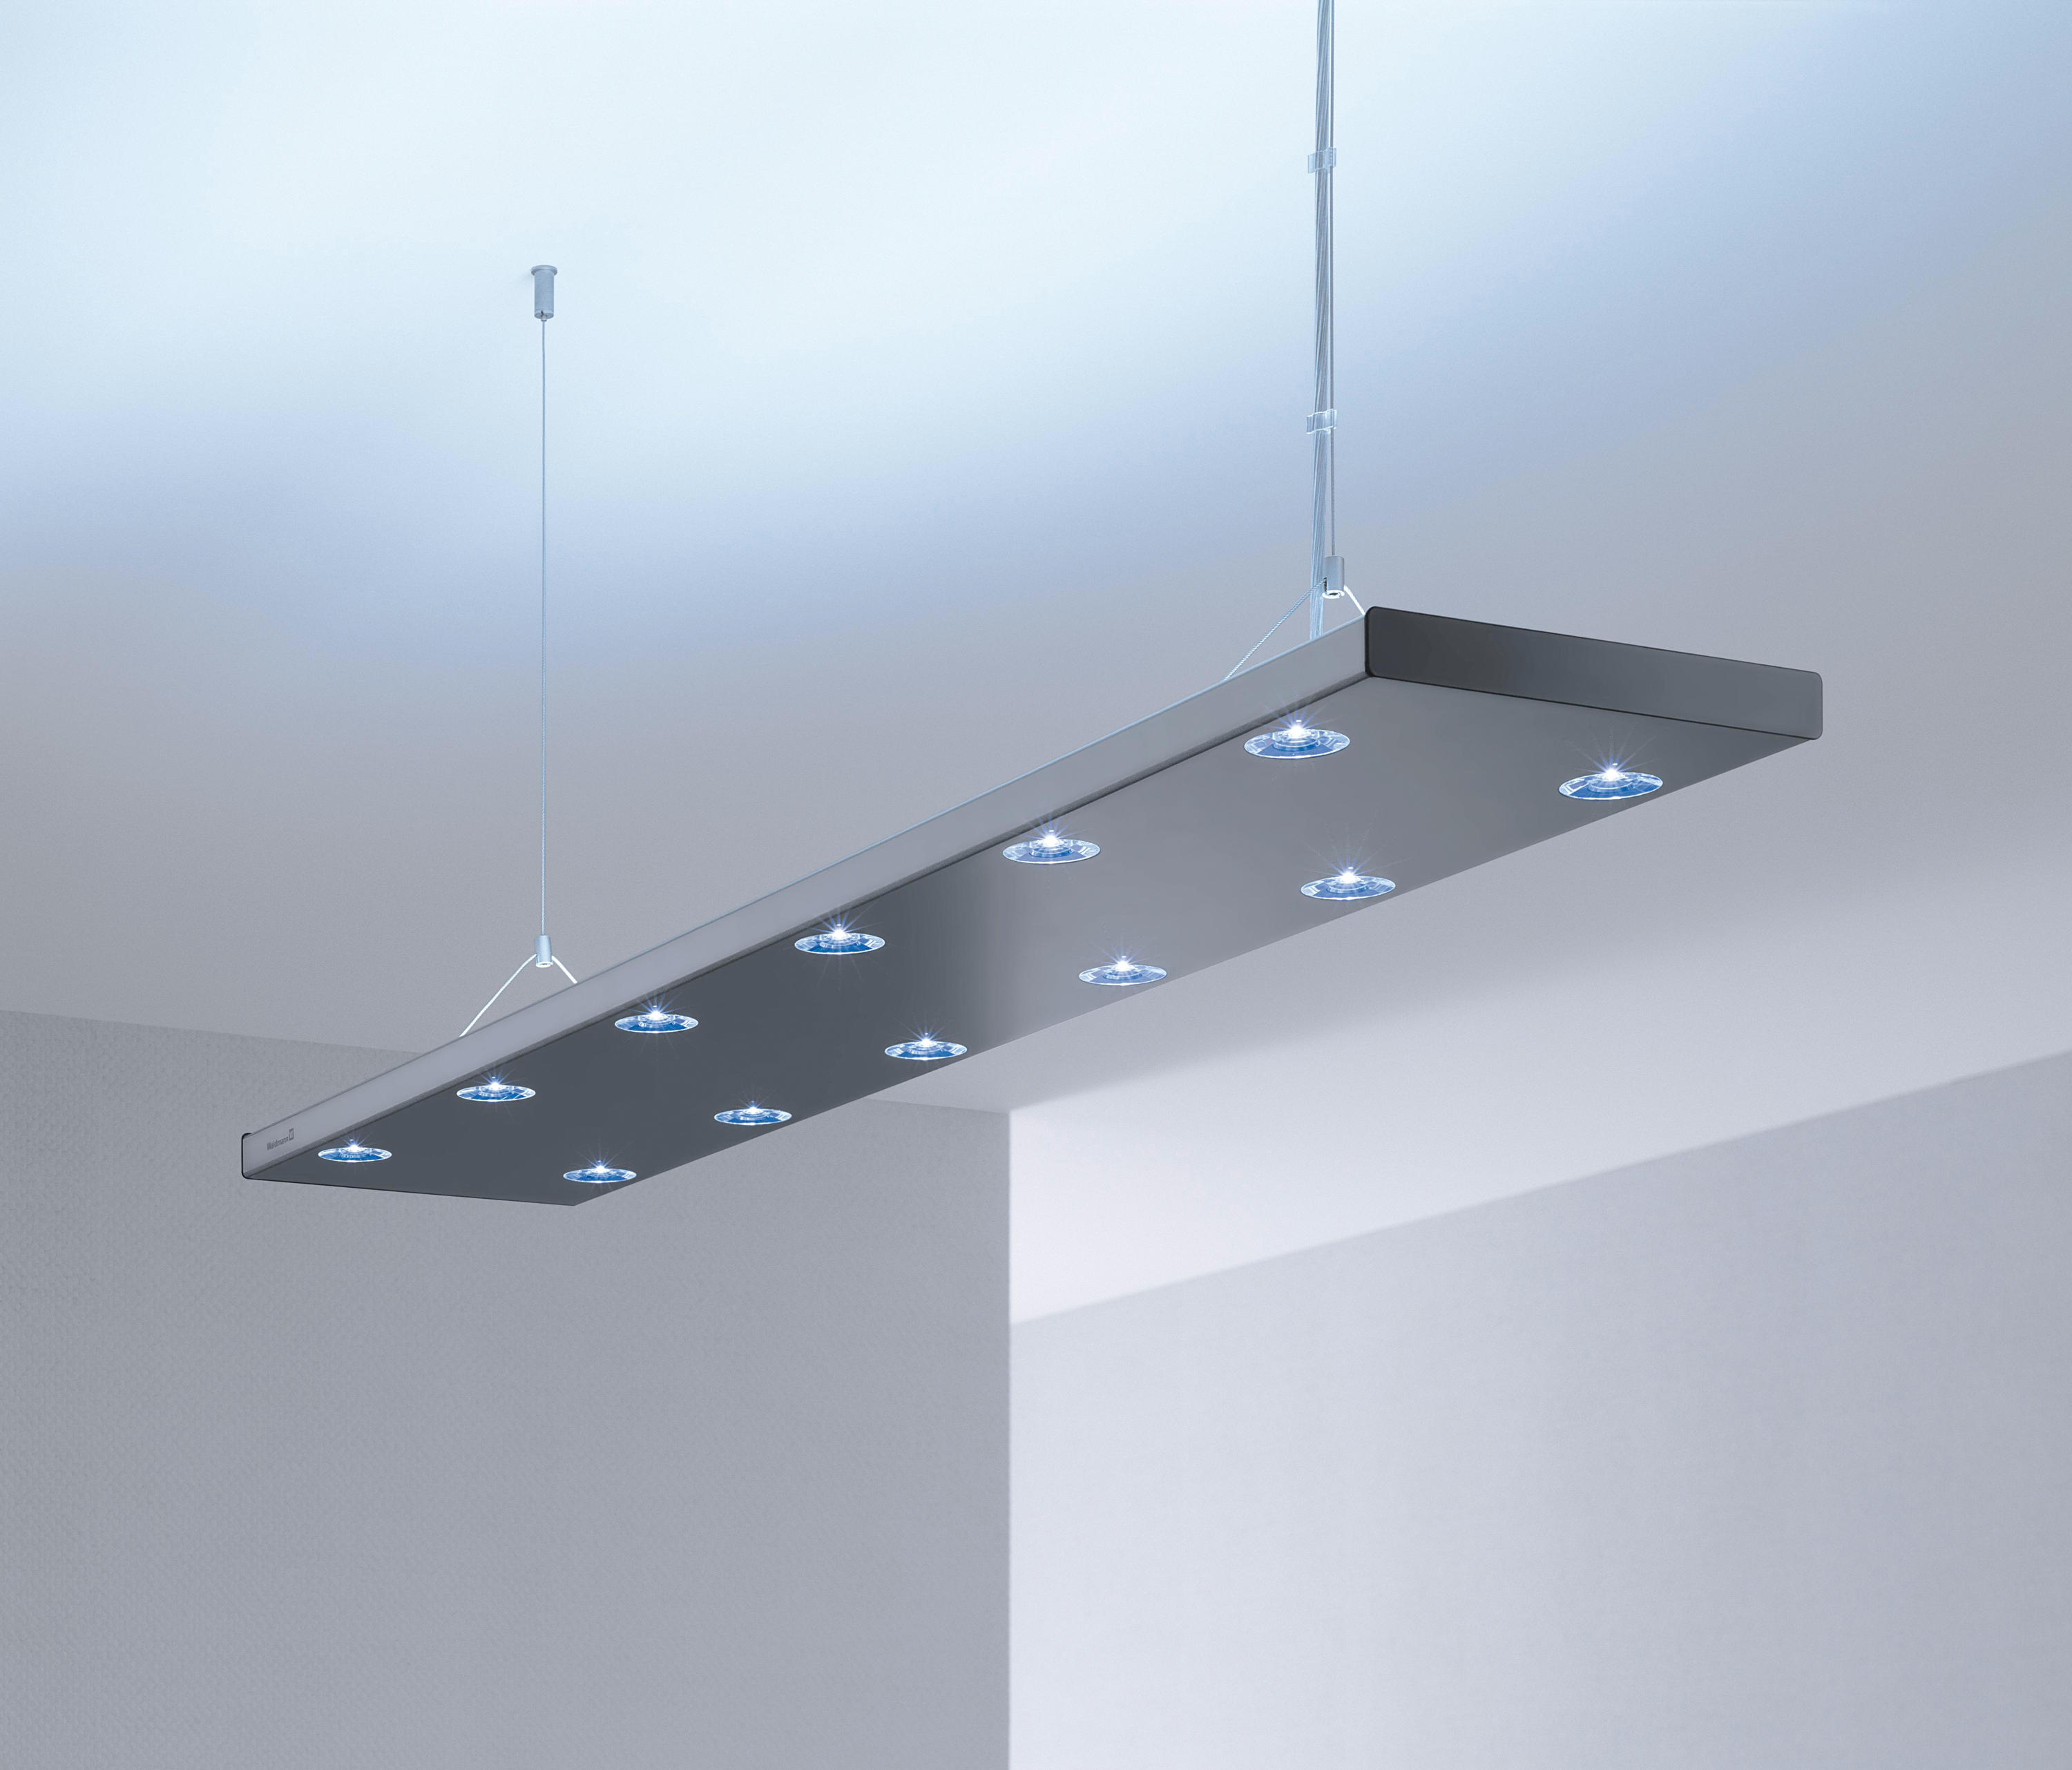 Hybrid led suspended luminaire pendant strip lights by h for Luminaire suspension